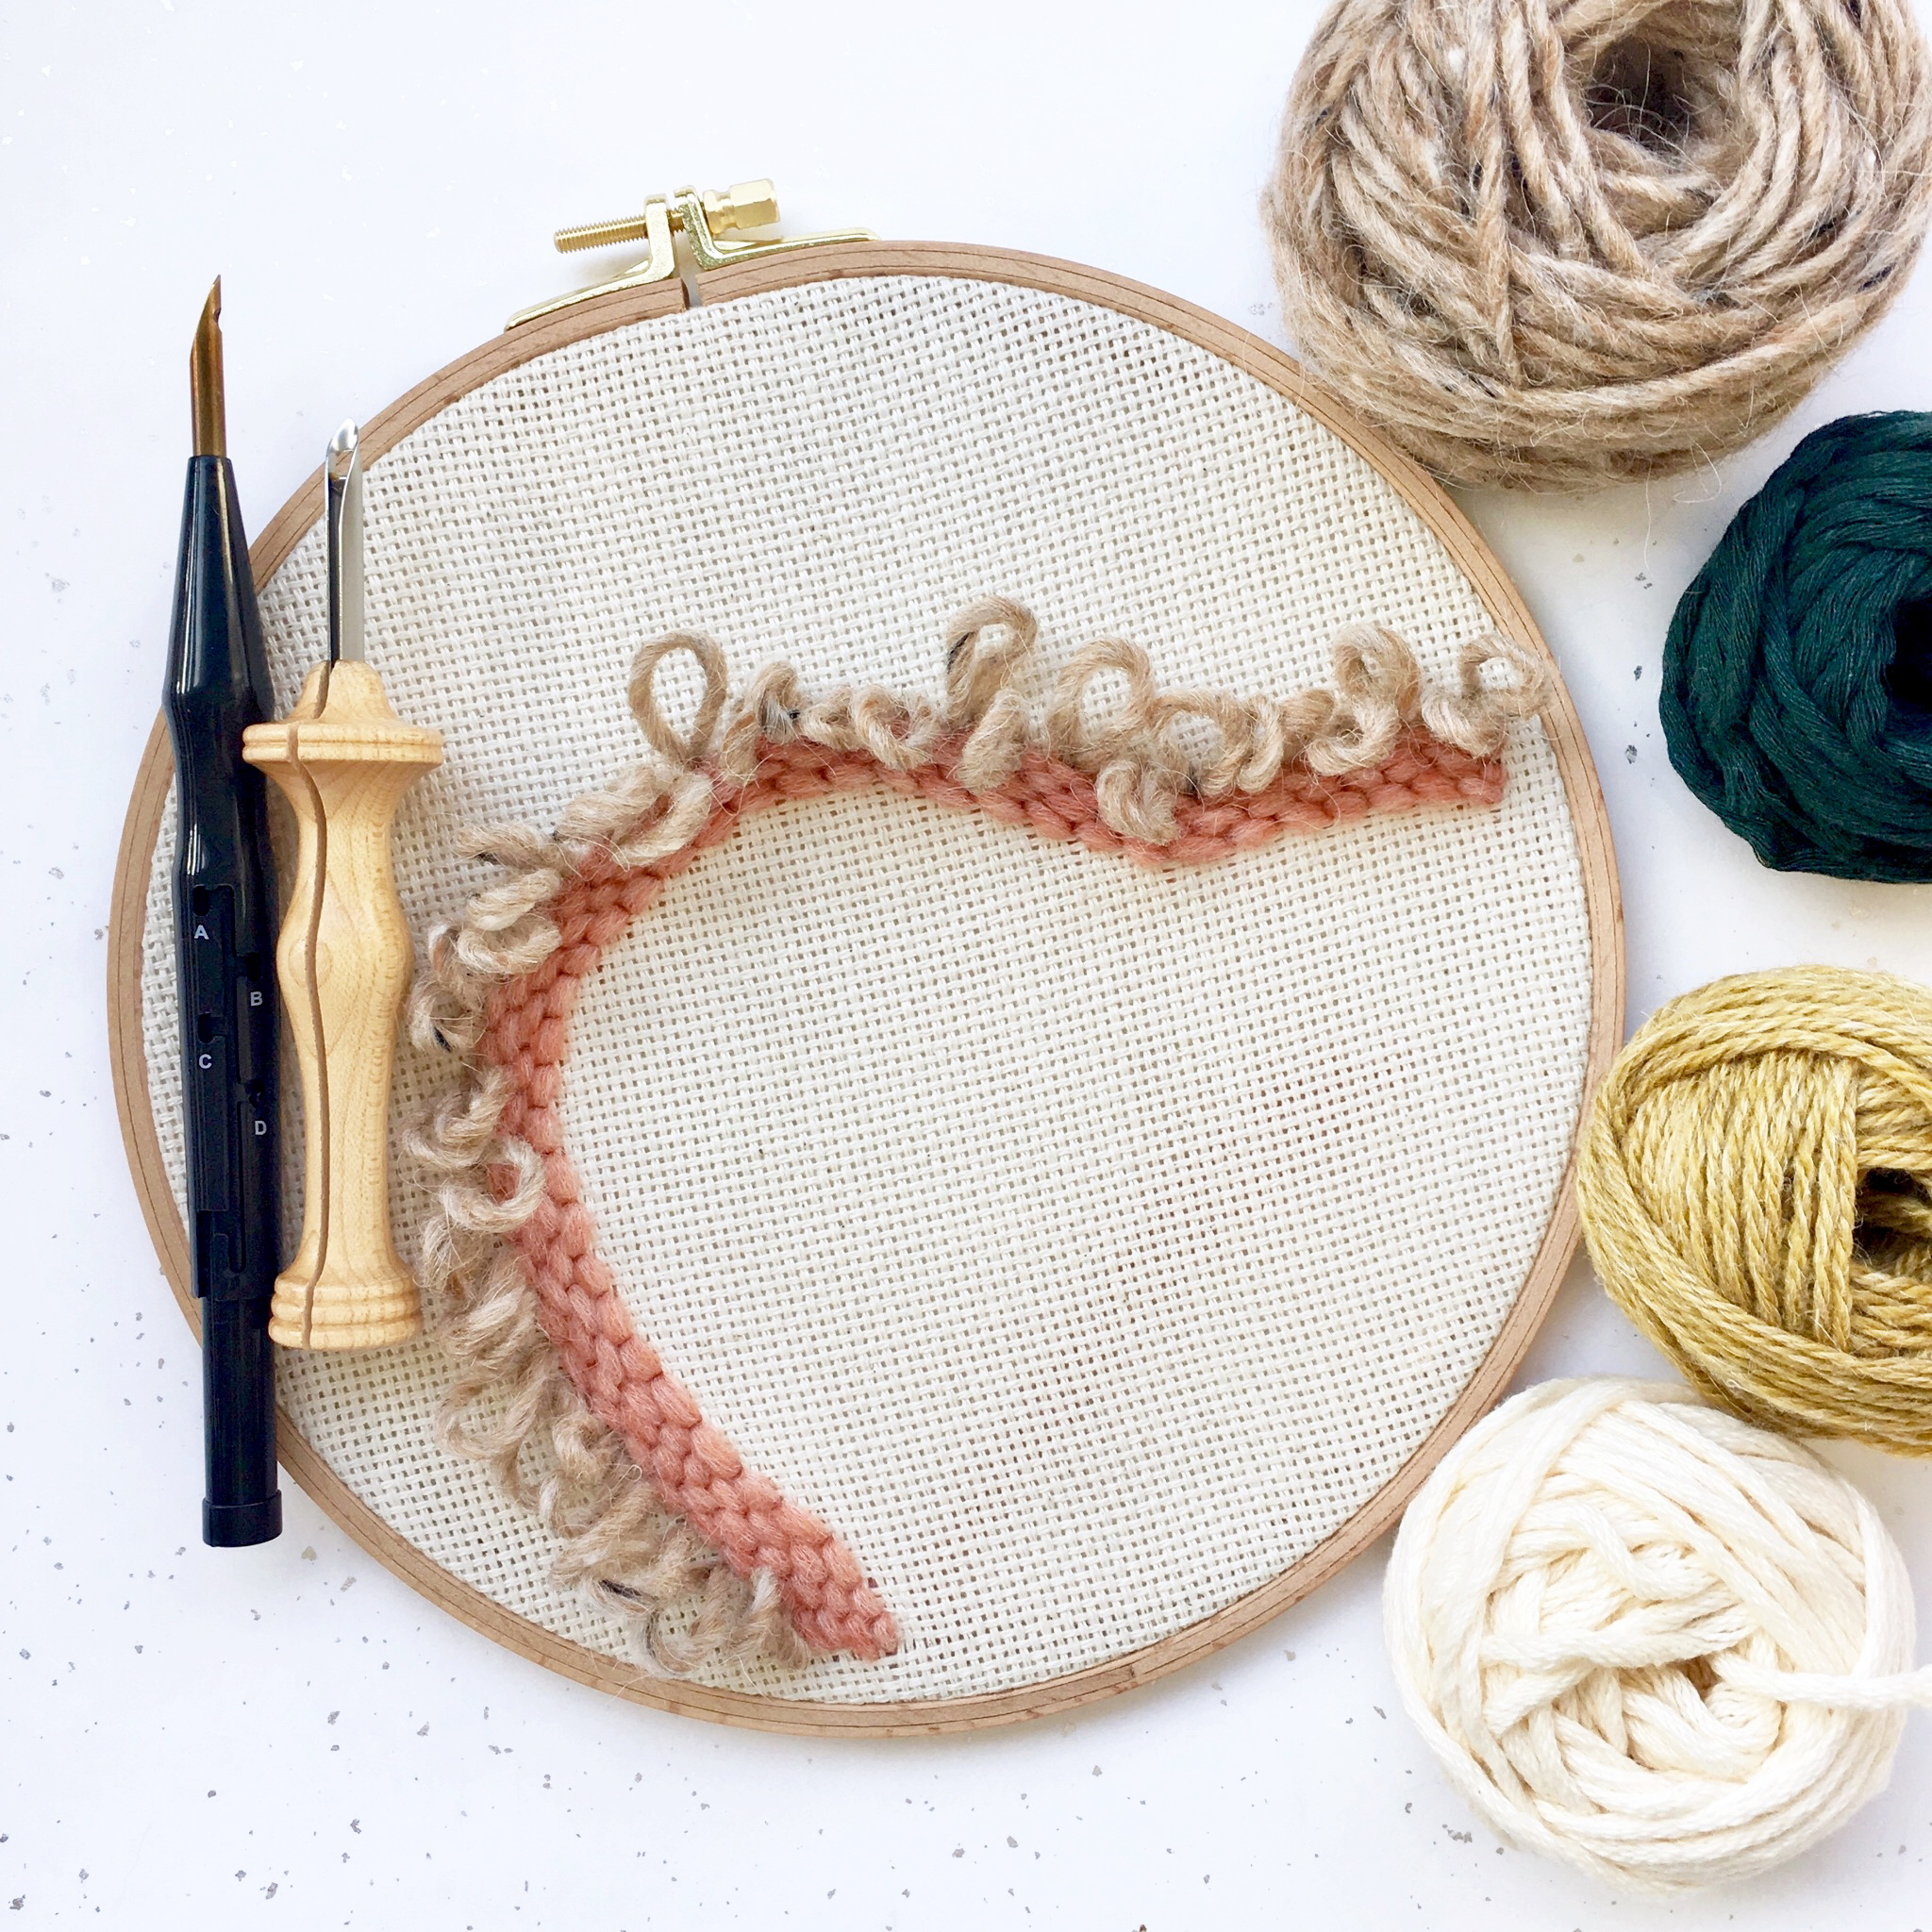 During the course you will be making a punch needle project on an embroidery hoop. You have two needle options to choose from.